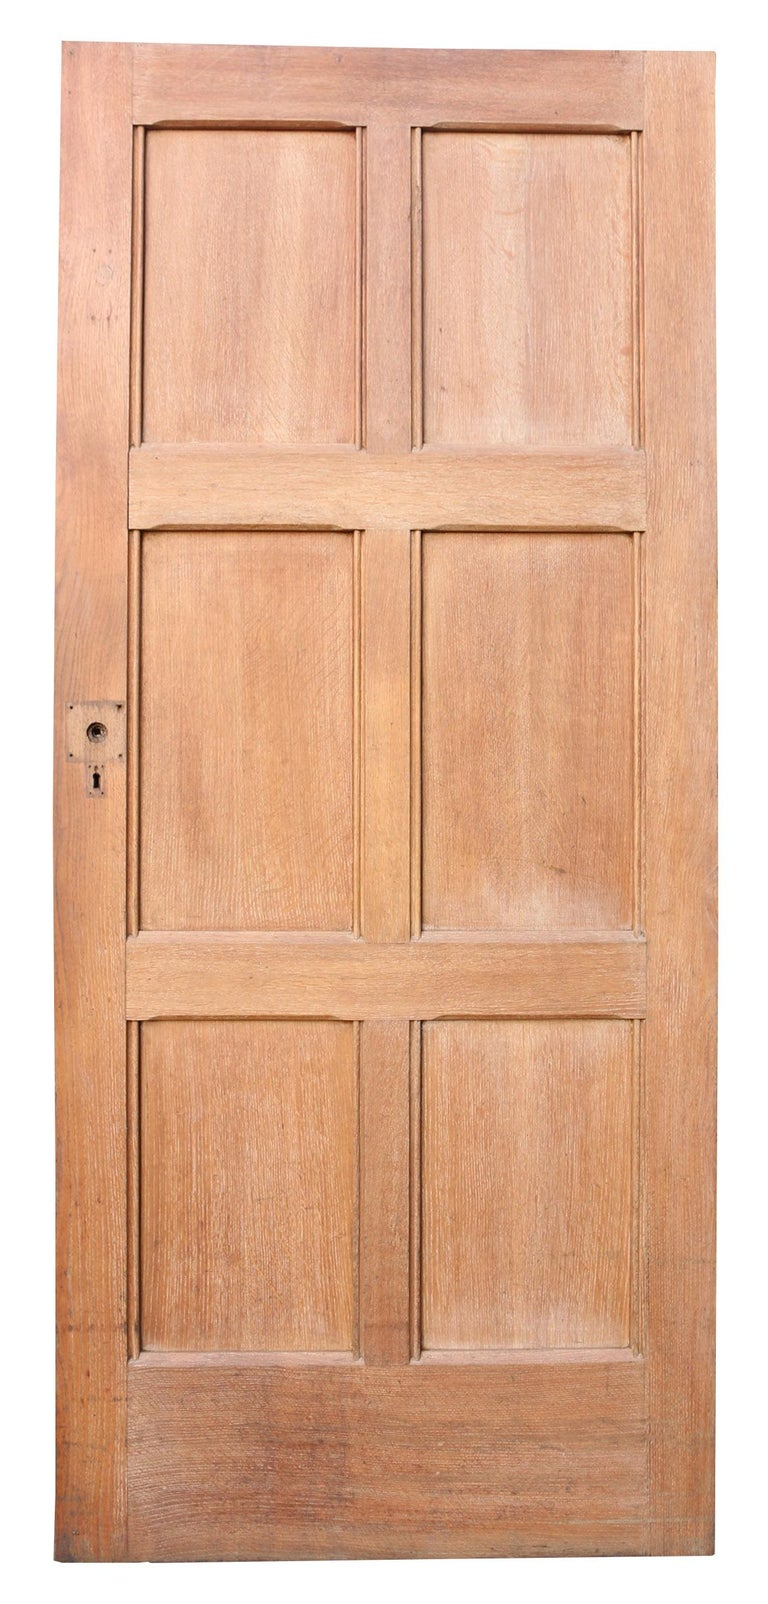 Exterior English Oak Six-Panel Door In Fair Condition For Sale In Wormelow, Herefordshire